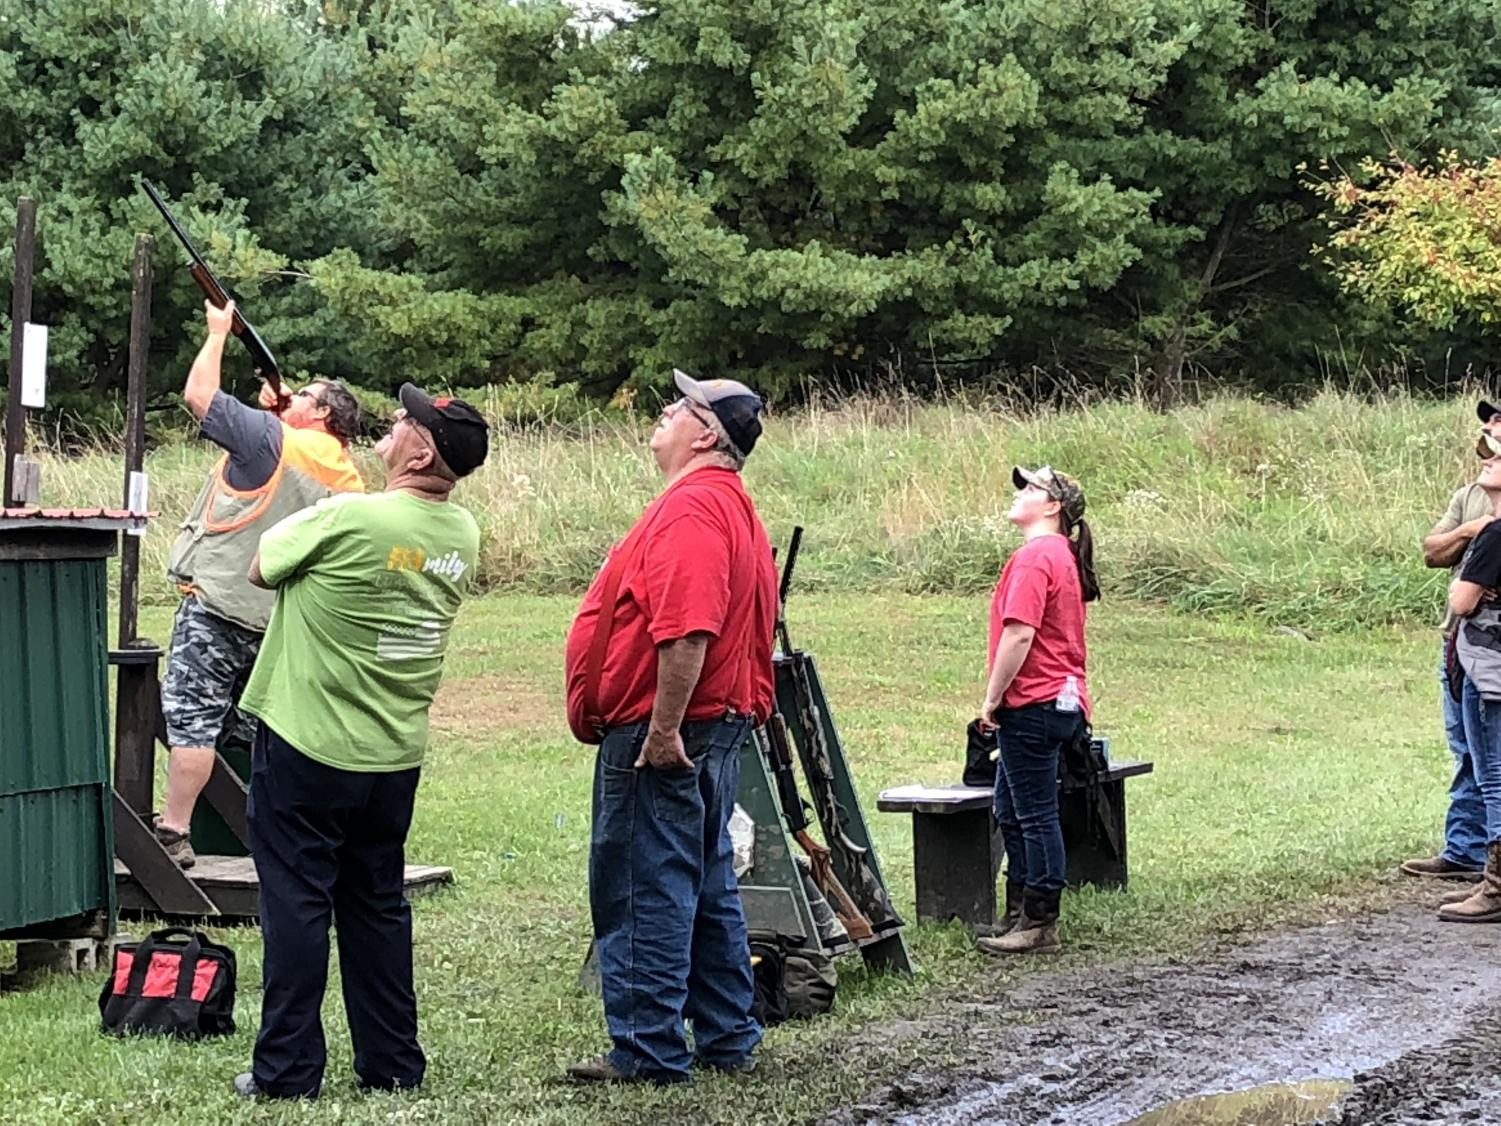 Participants were challenged to a variety of clay targets throughout the 50 shot course. Some clays fly away from the participants, other clays came from behind or right or left.  There were also clays rolling along the ground knows as rabbits.  The course was set to challenge competitive shooters, but also allowed for beginners to gain confidence in shooting clays for the first time